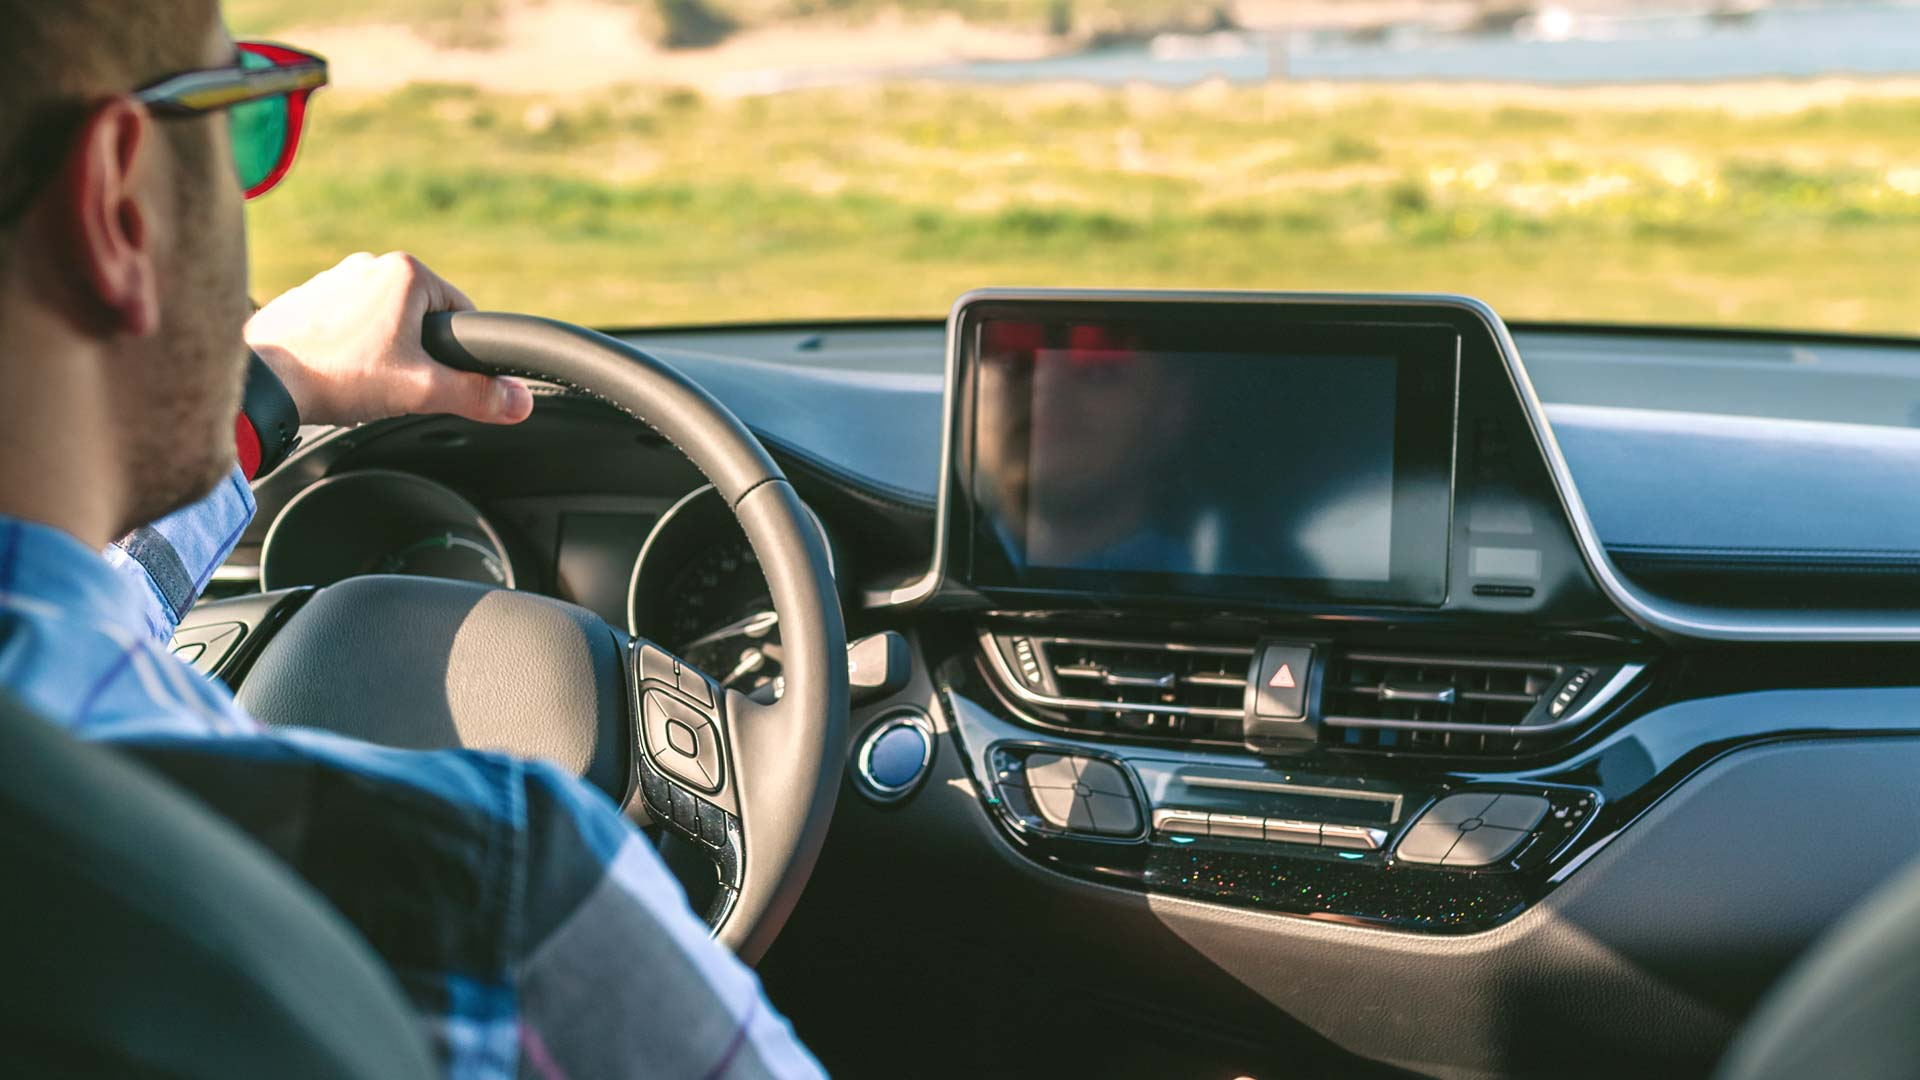 Post: Why Do My Auto Insurance Rates Keep Going Up Even Though My Car Keeps Getting Older?